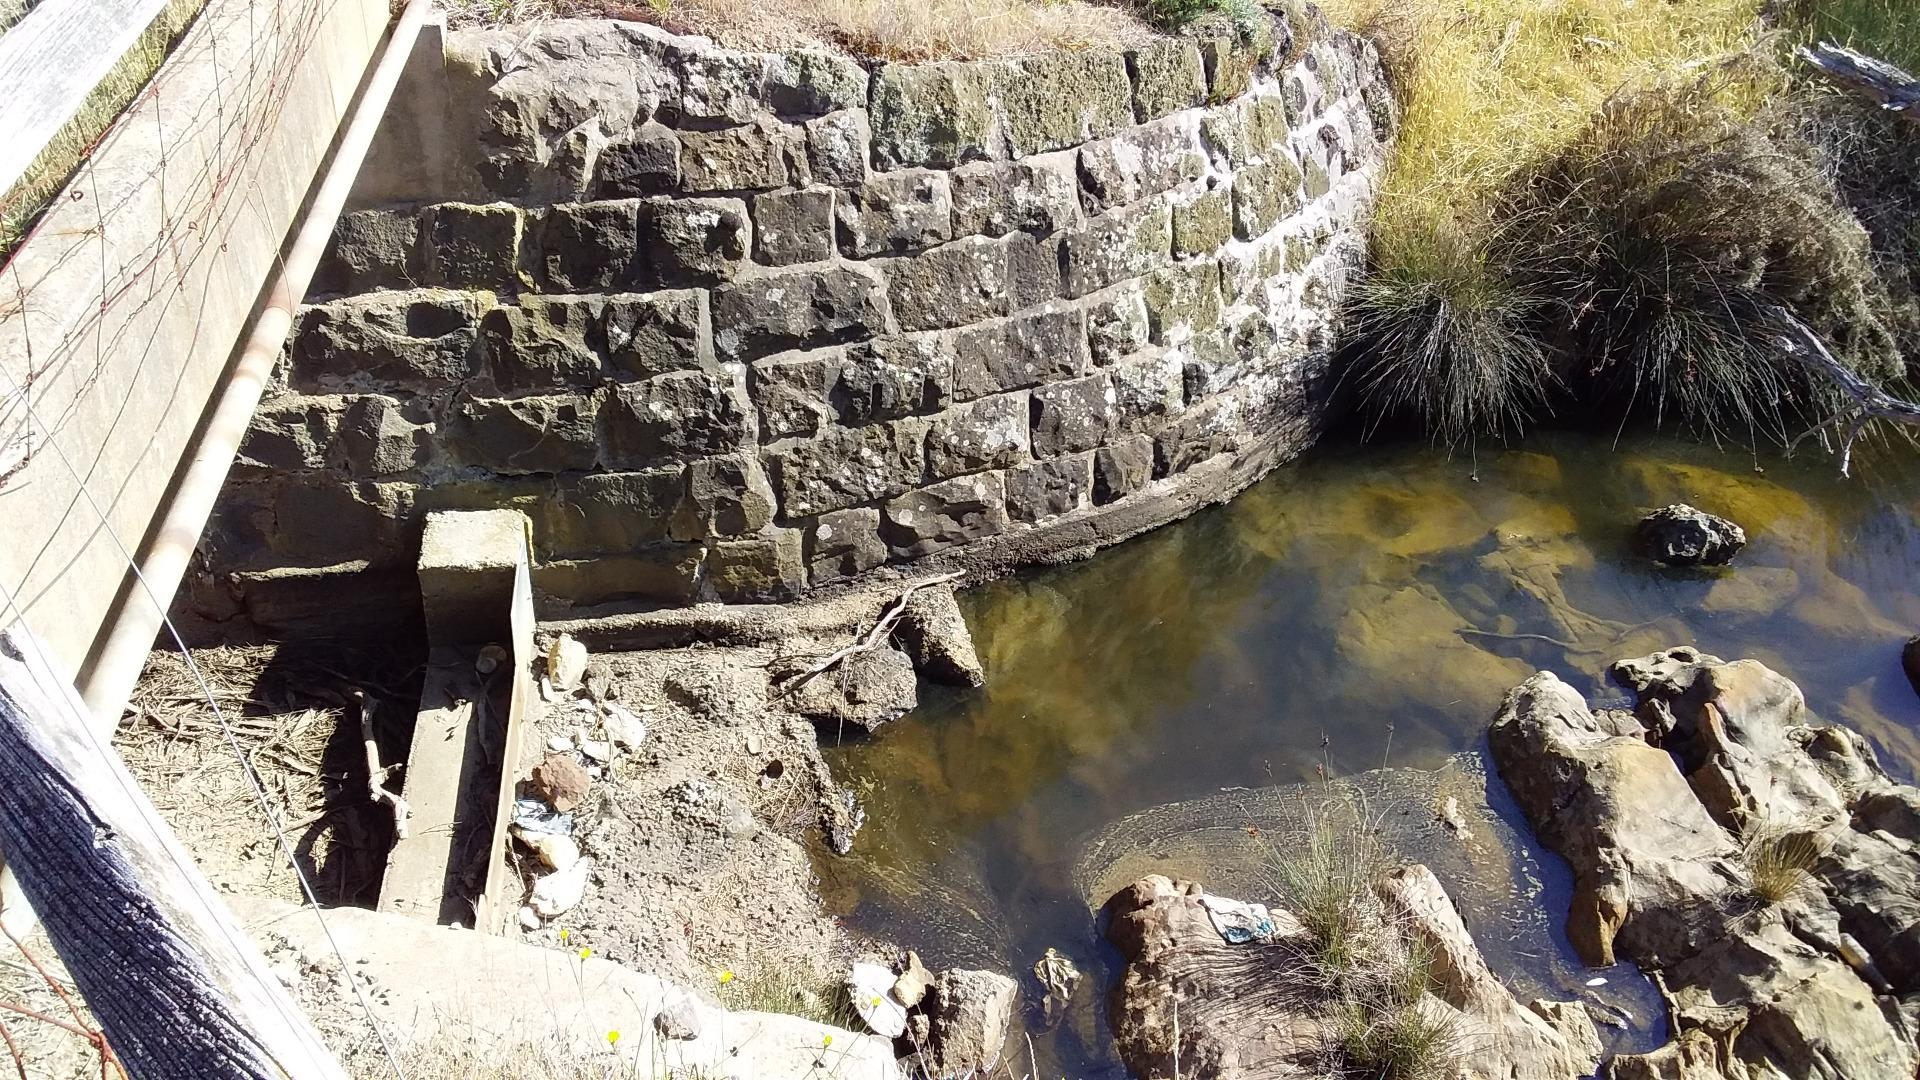 Downstream side of bridge Water Sample Collection Area Jan2019